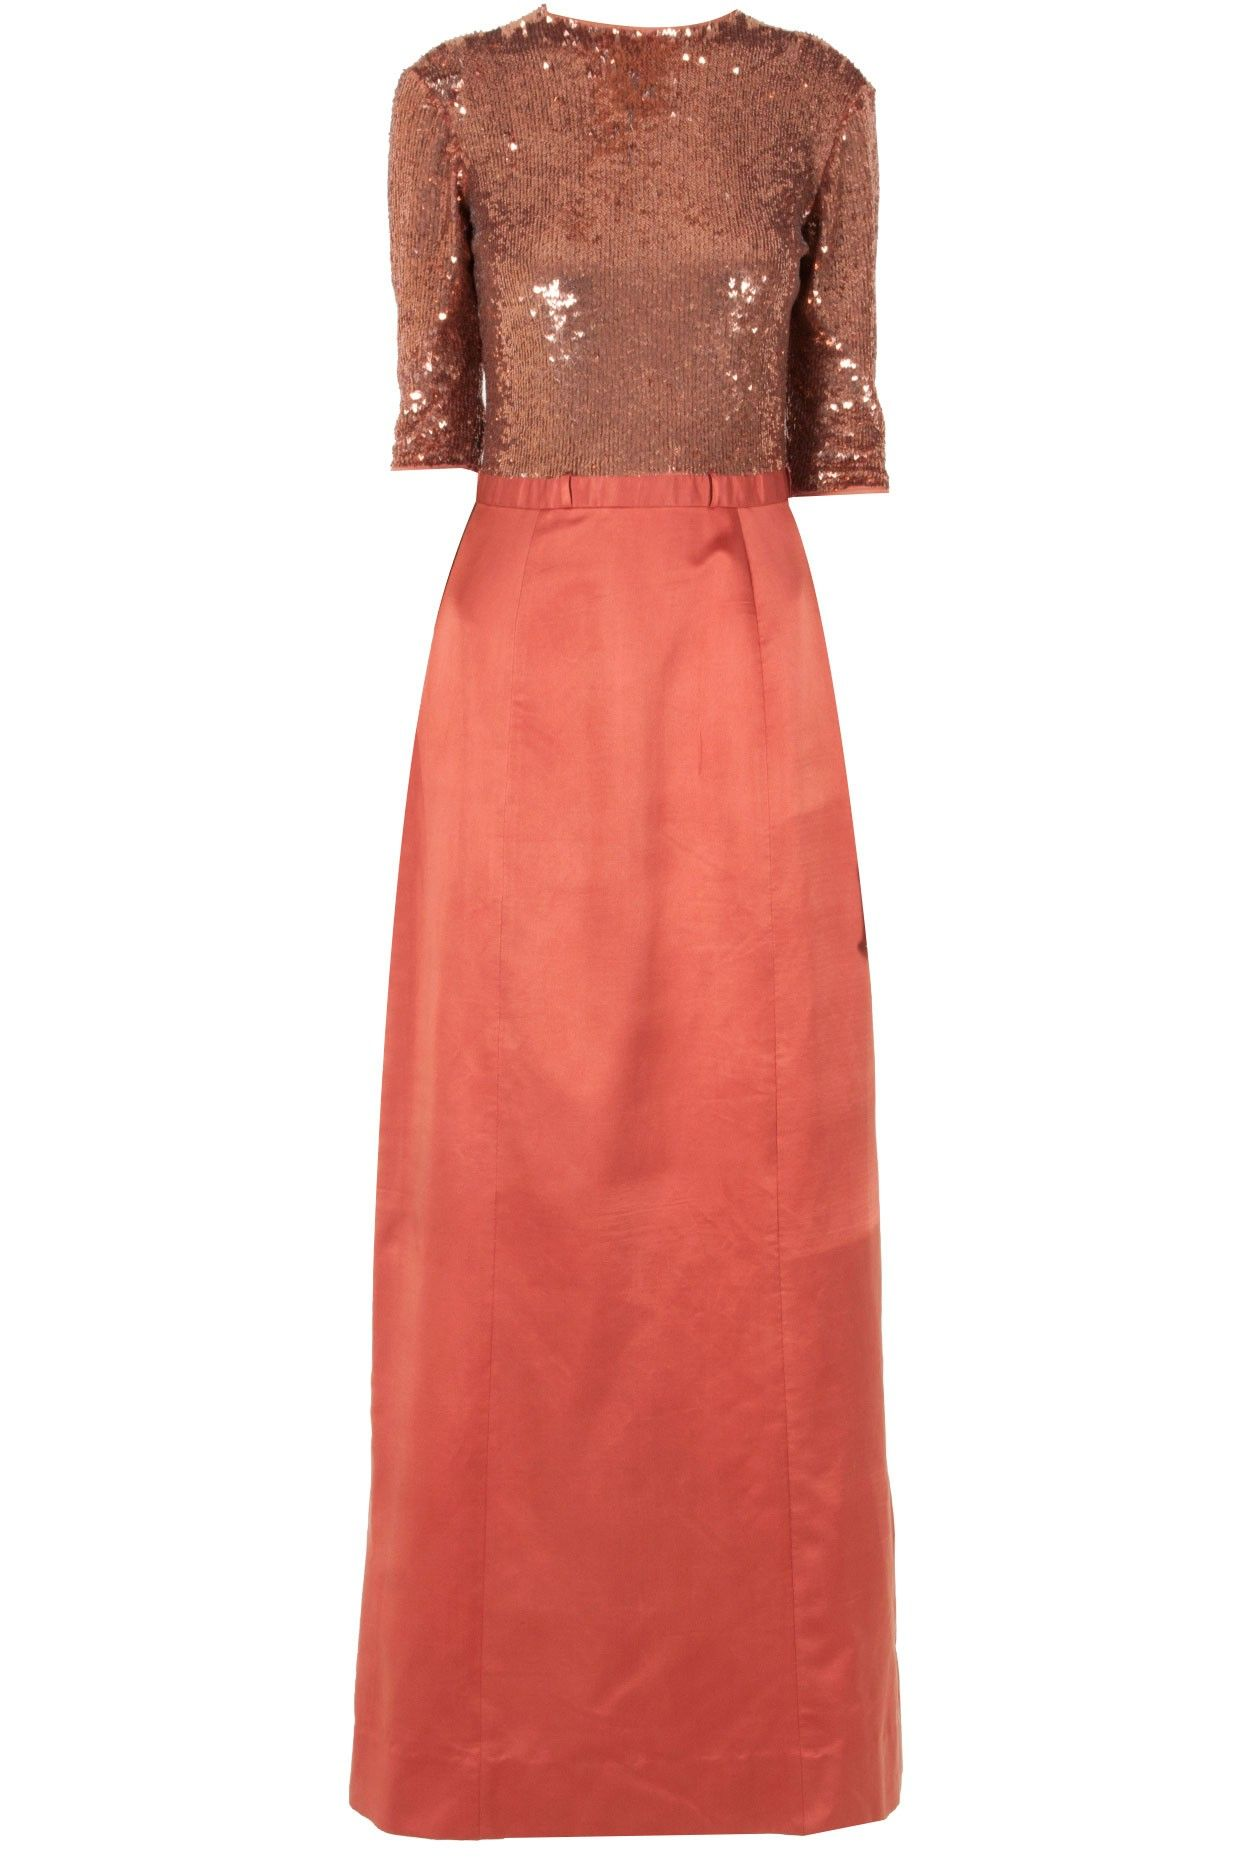 Sailex rose gold long dress with sequined bodice dresses pinterest